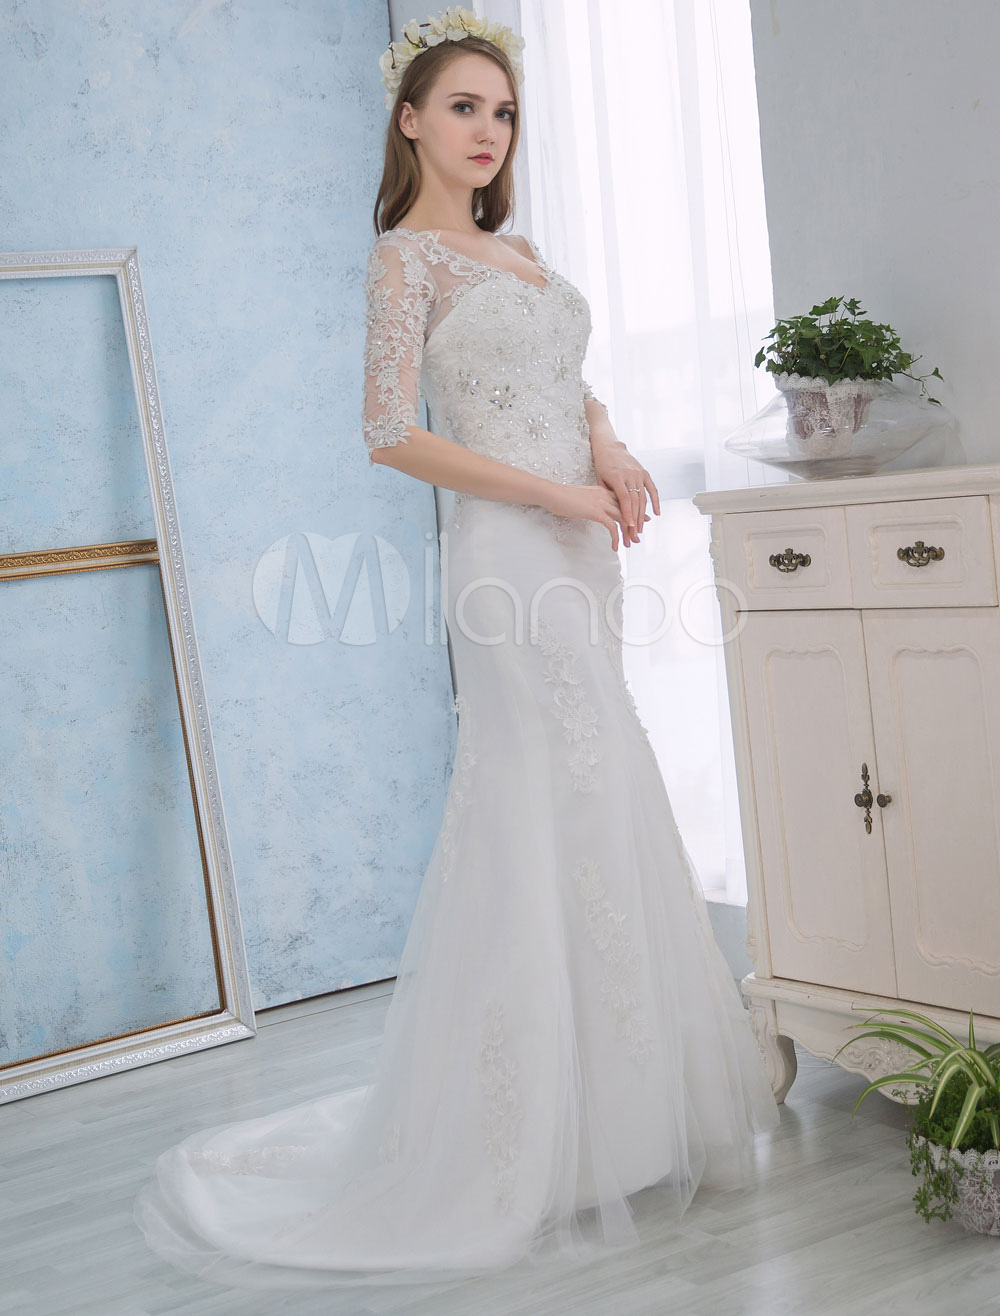 Buy Mermaid Wedding Dresses Lace Half Sleeve Bridal Dress Backless Beading Ivory Wedding Gown With Train for $162.79 in Milanoo store